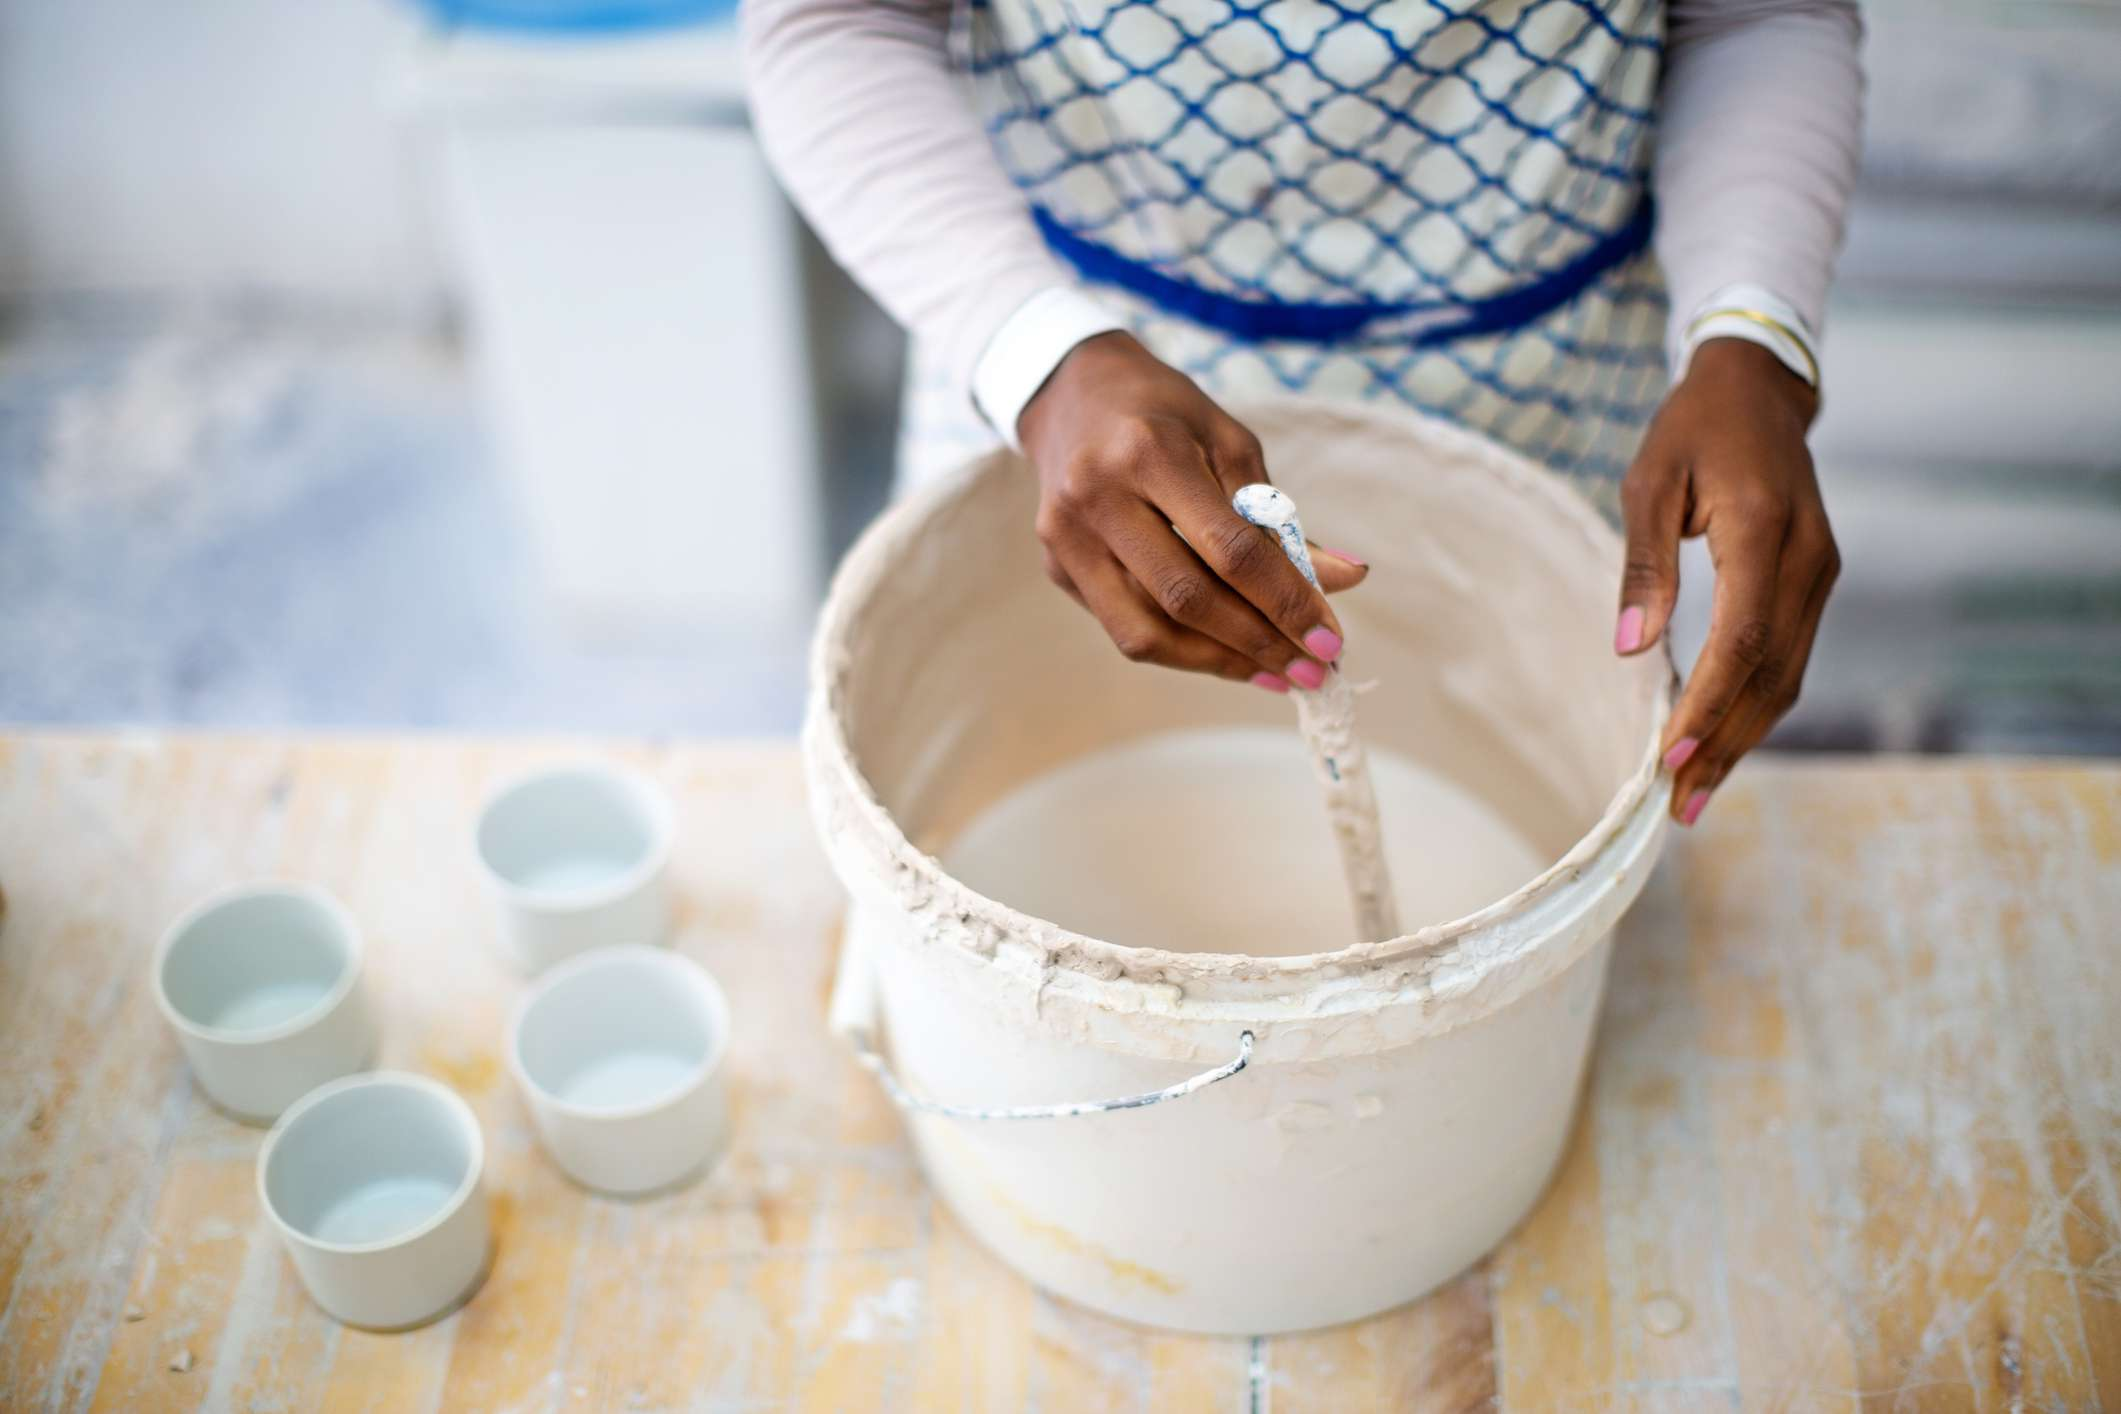 Potter mixing pottery mixture in a bucket at workshop